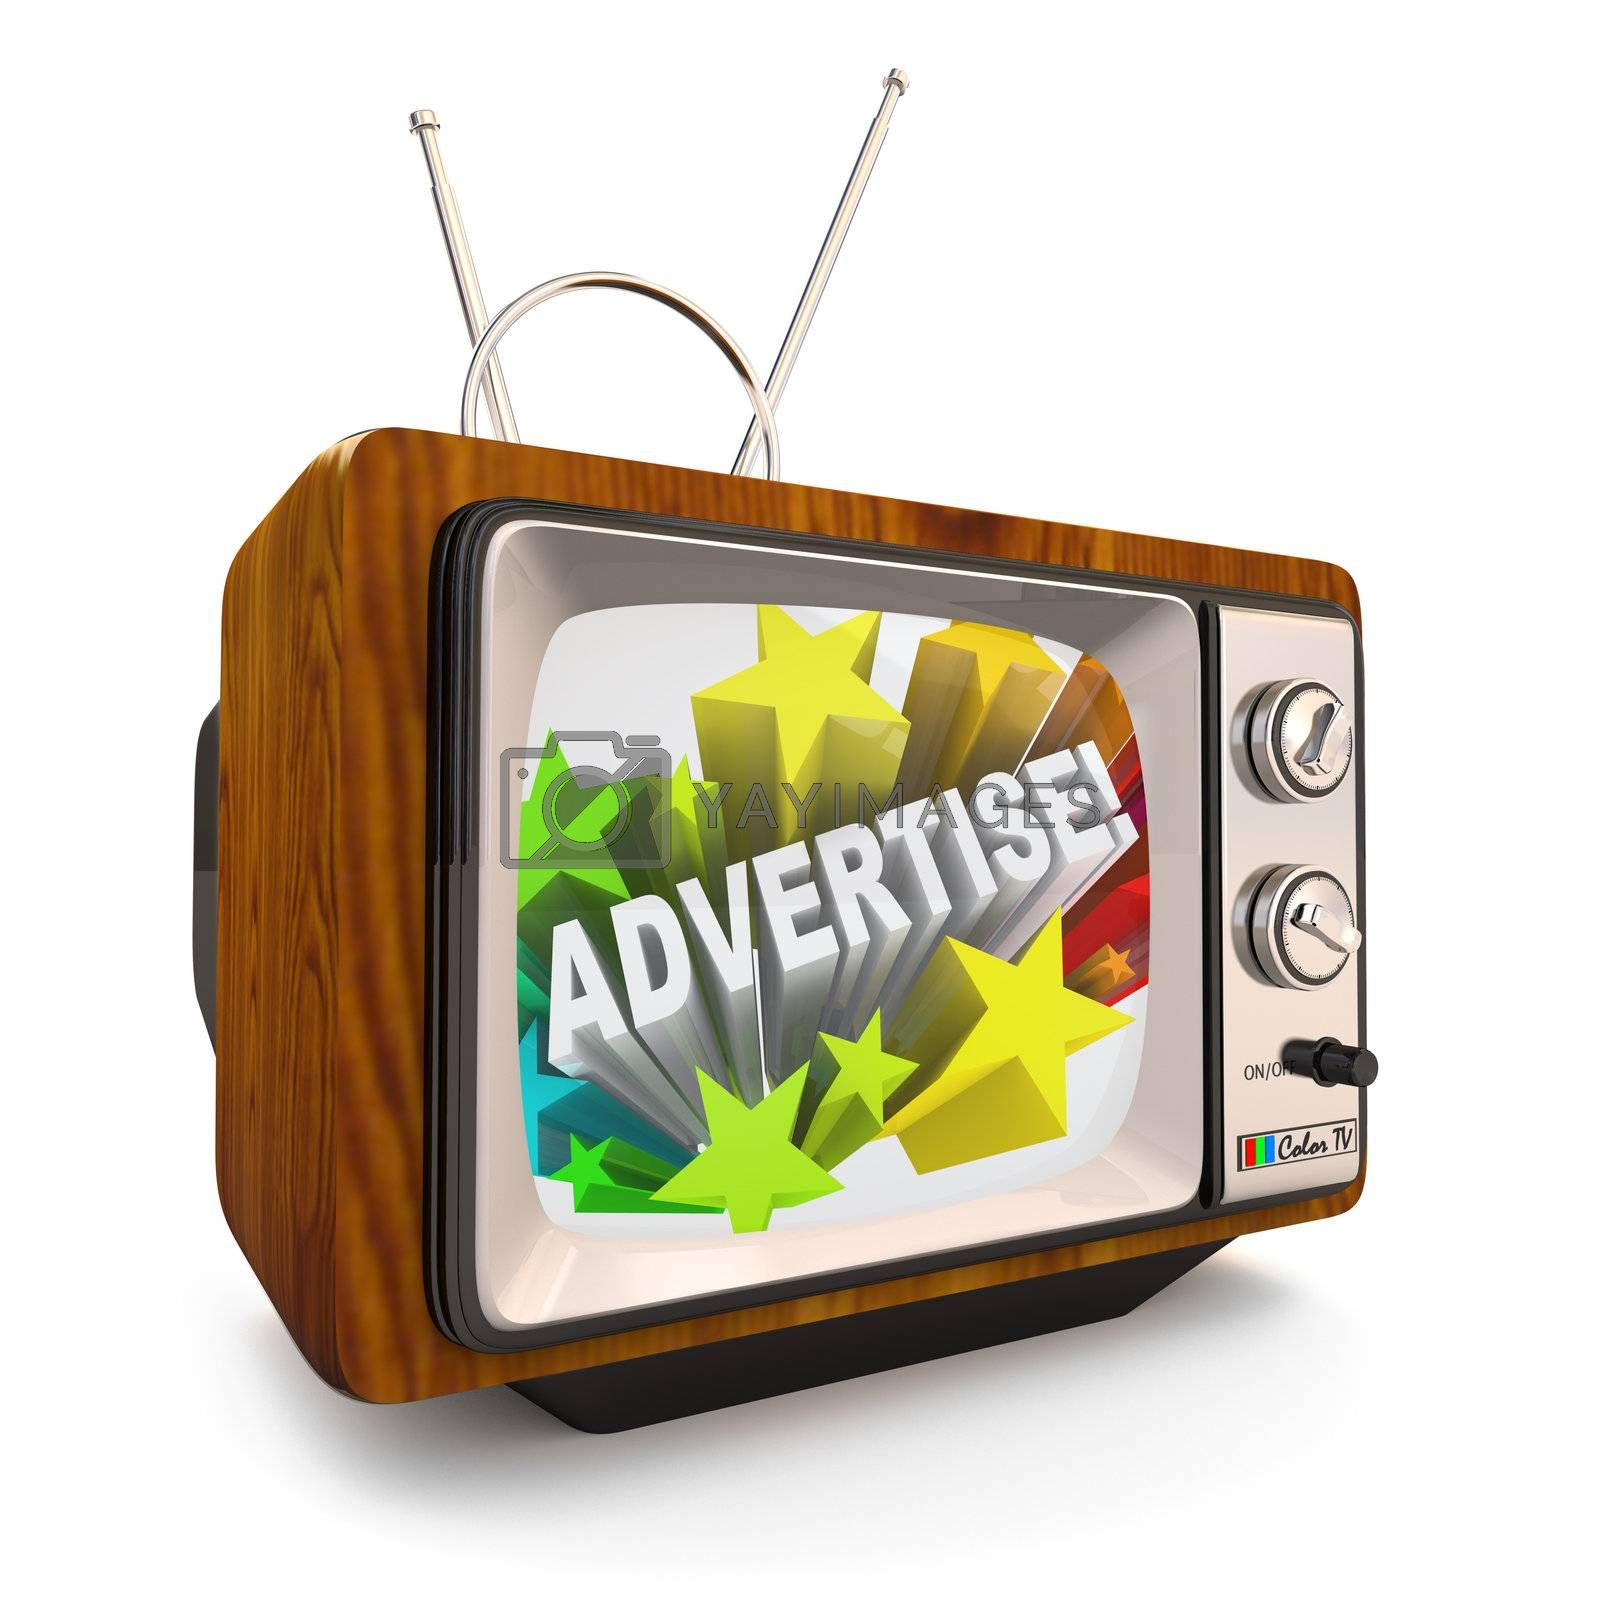 An old fashioned television shows the word Advertising and a burst of colorful stars to grab attention of customers